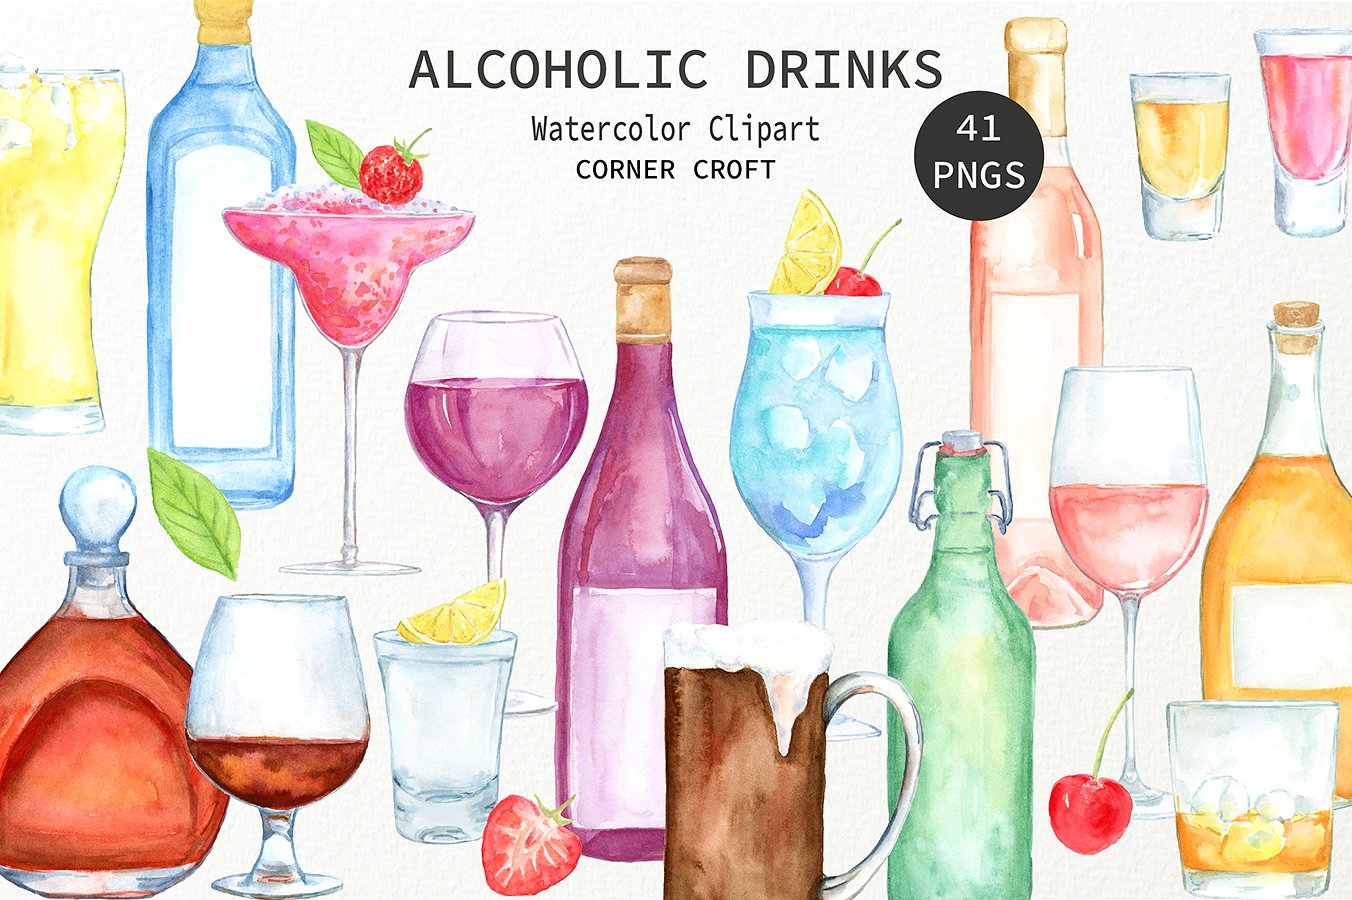 champaign clipart alcoholic drink